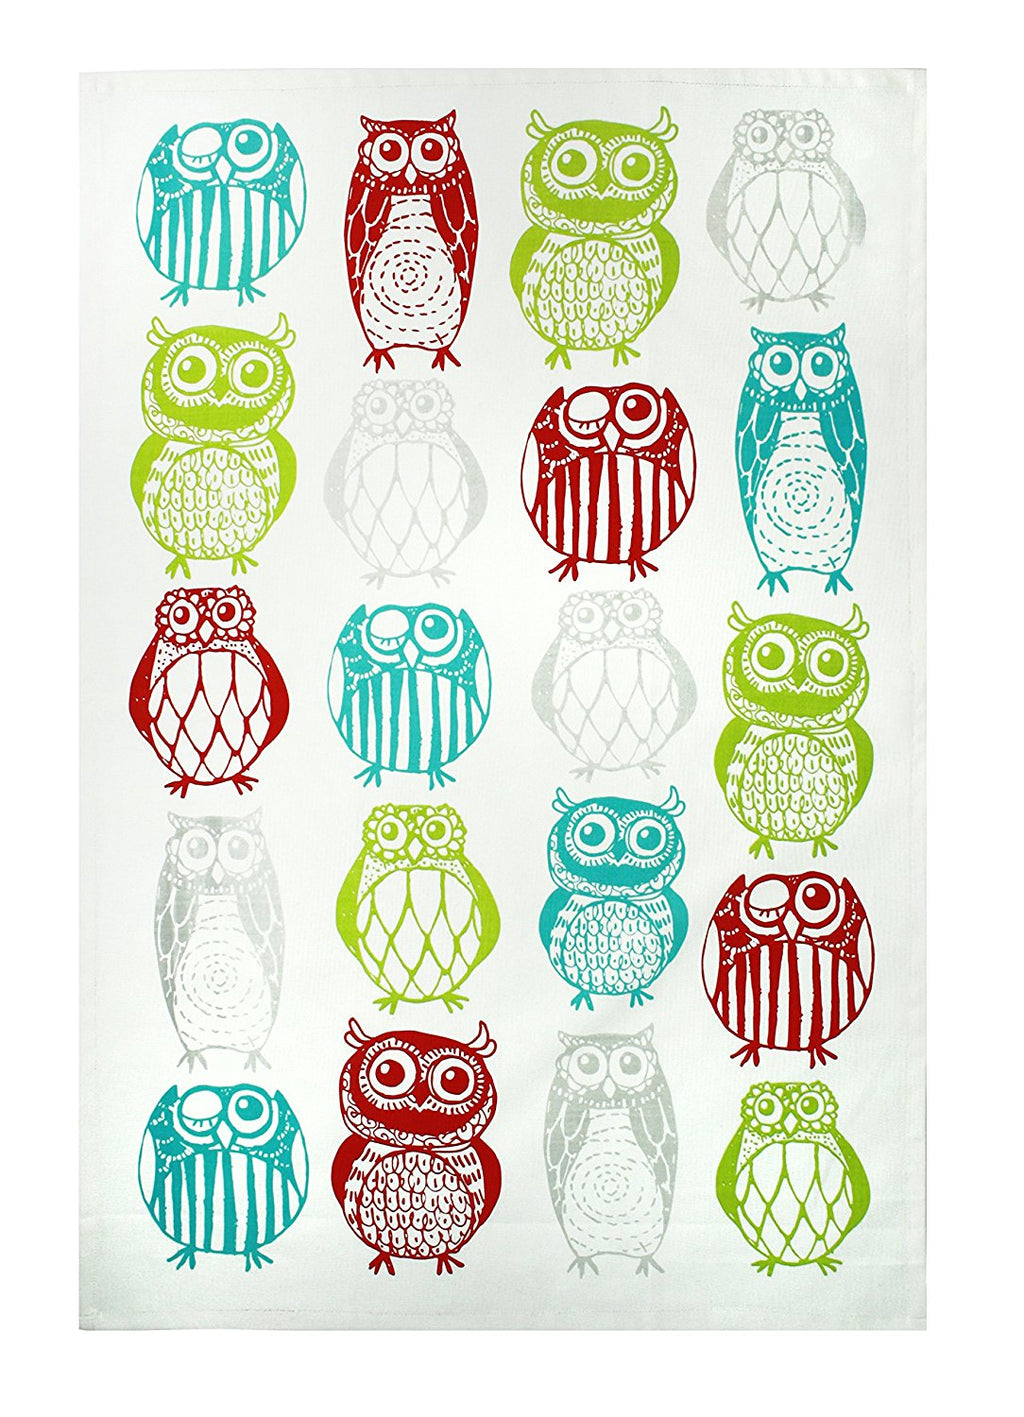 MUkitchen 100% Cotton Oversized Designer Kitchen Towel, Cats - 20 x 30 inches